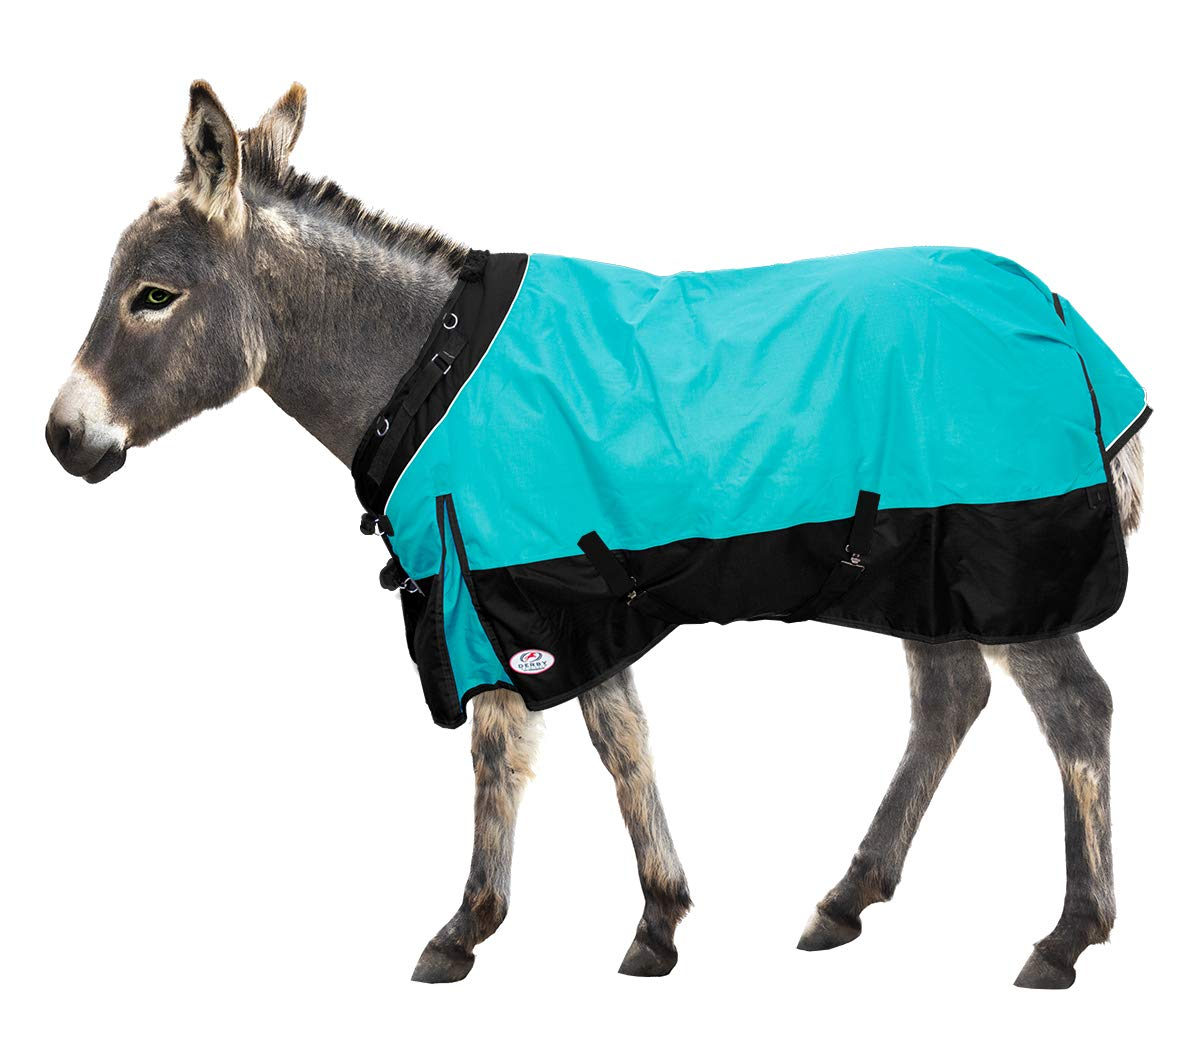 Derby Originals Windstorm Series Premium Mini Horse and Pony Winter Turnout Blanket with 1200D Ripstop Waterproof Nylon Exterior - Heavy Weight 300g Polyfil Insulation